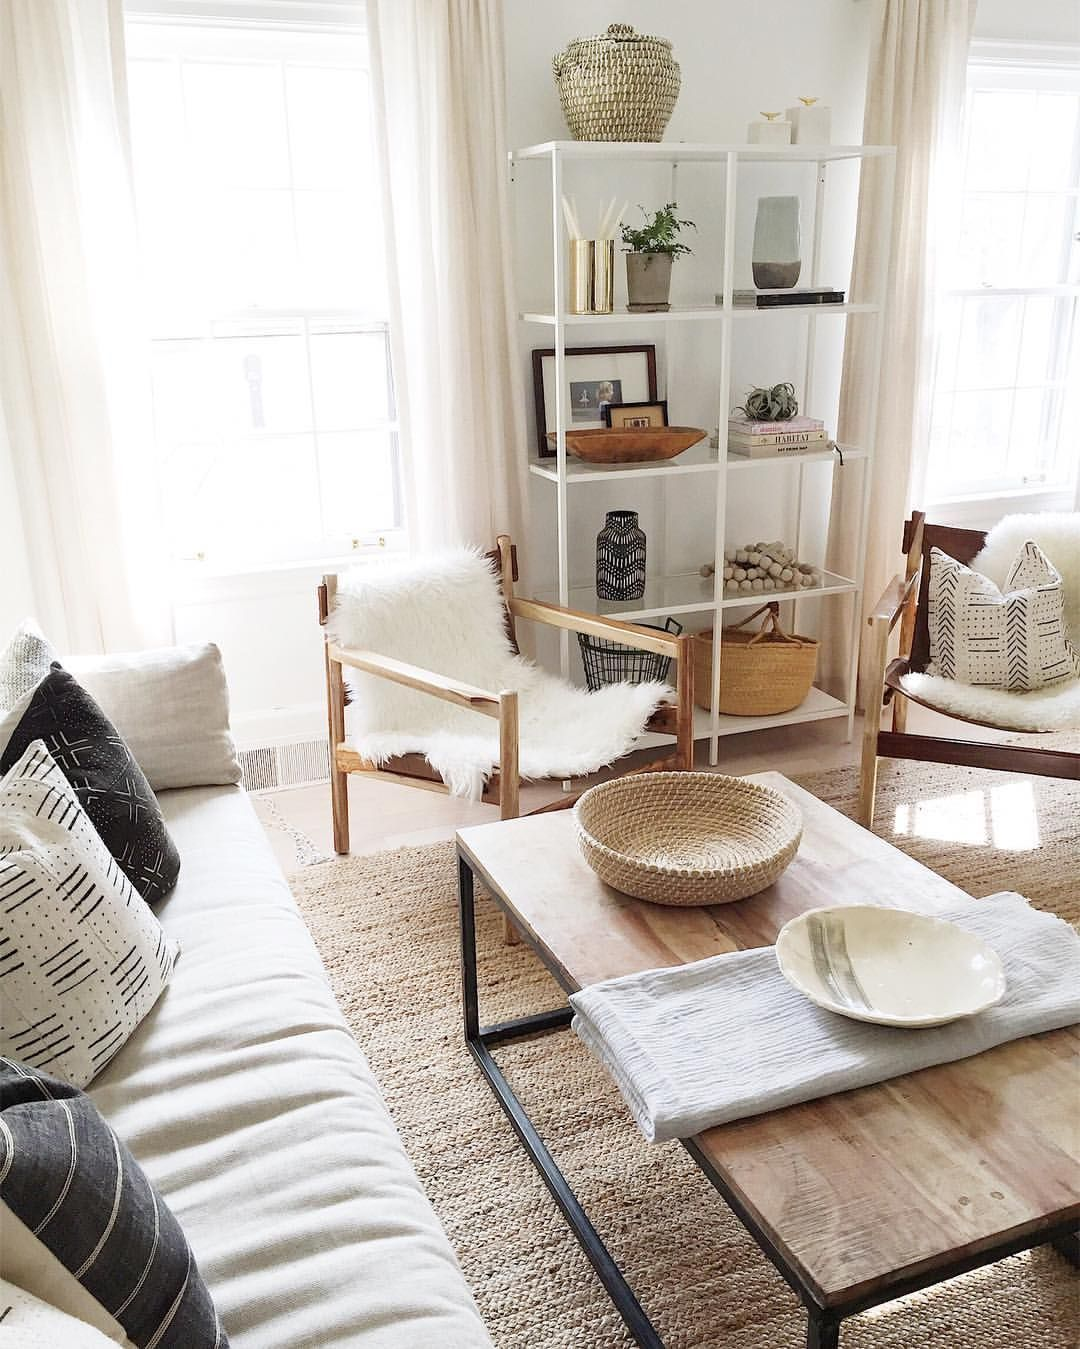 How to Style a Coffee Table in